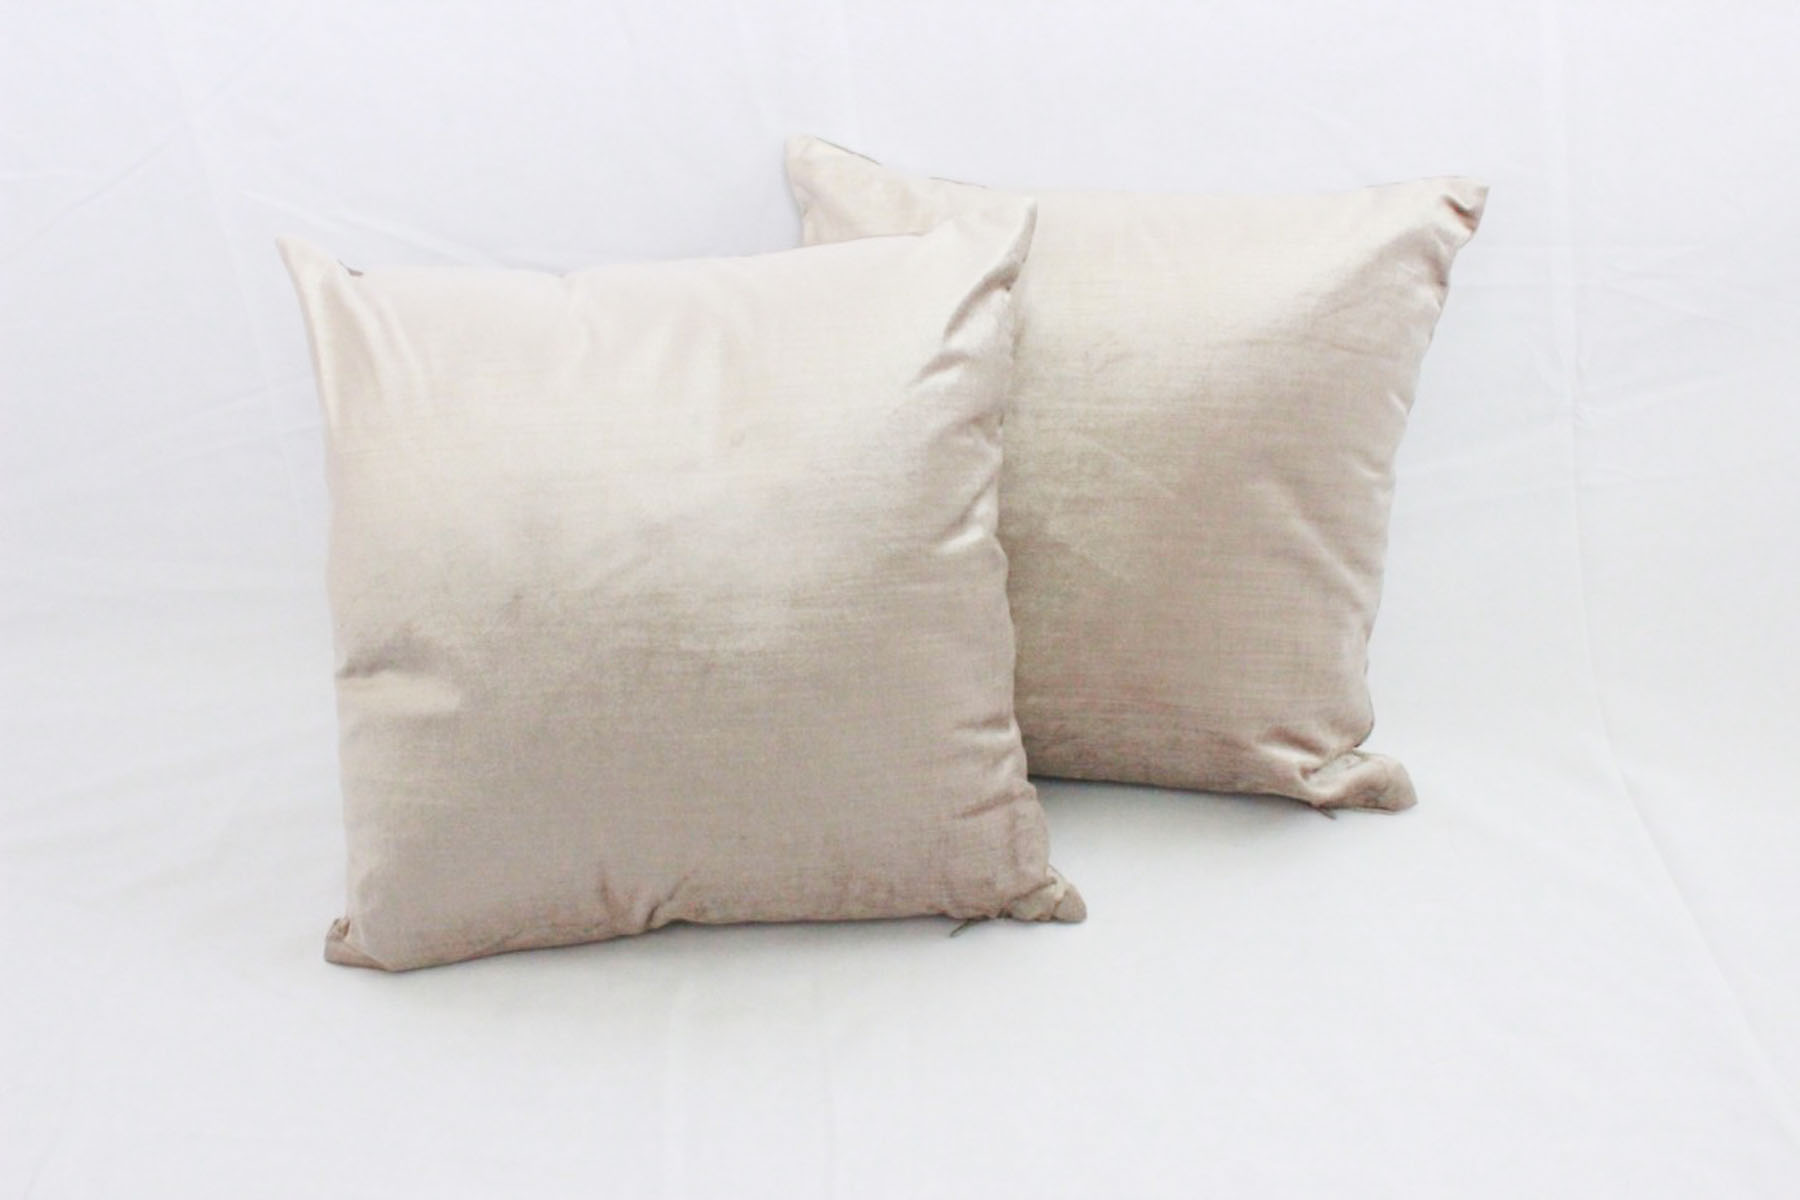 Champagne Velvet Pillows - Scavenged Vintage Rentals